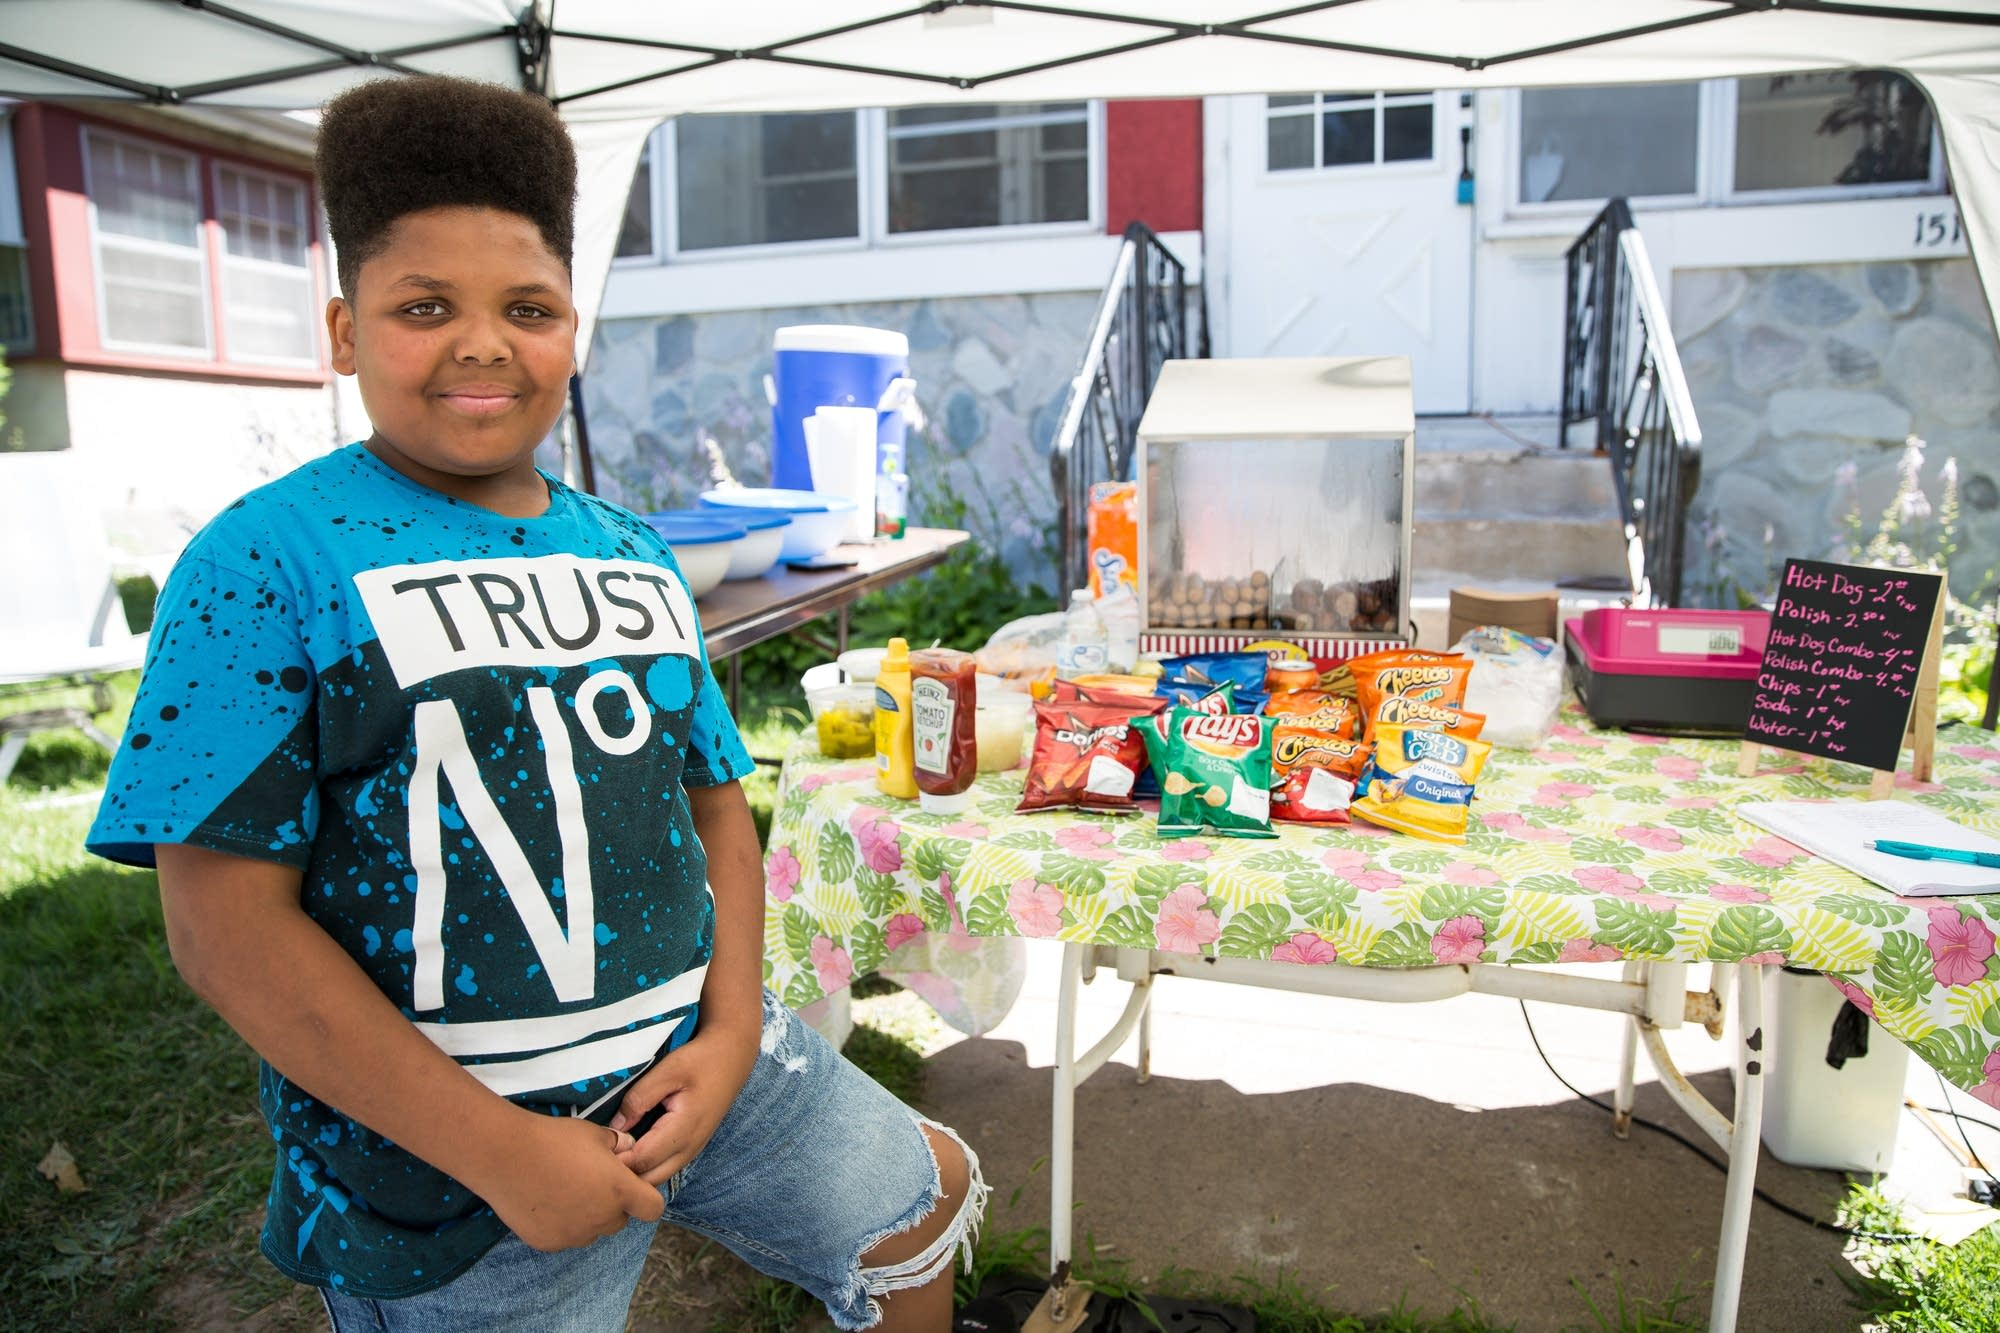 Jaequan Faulkner, 13, stands for a portrait in front of his hot dog stand.